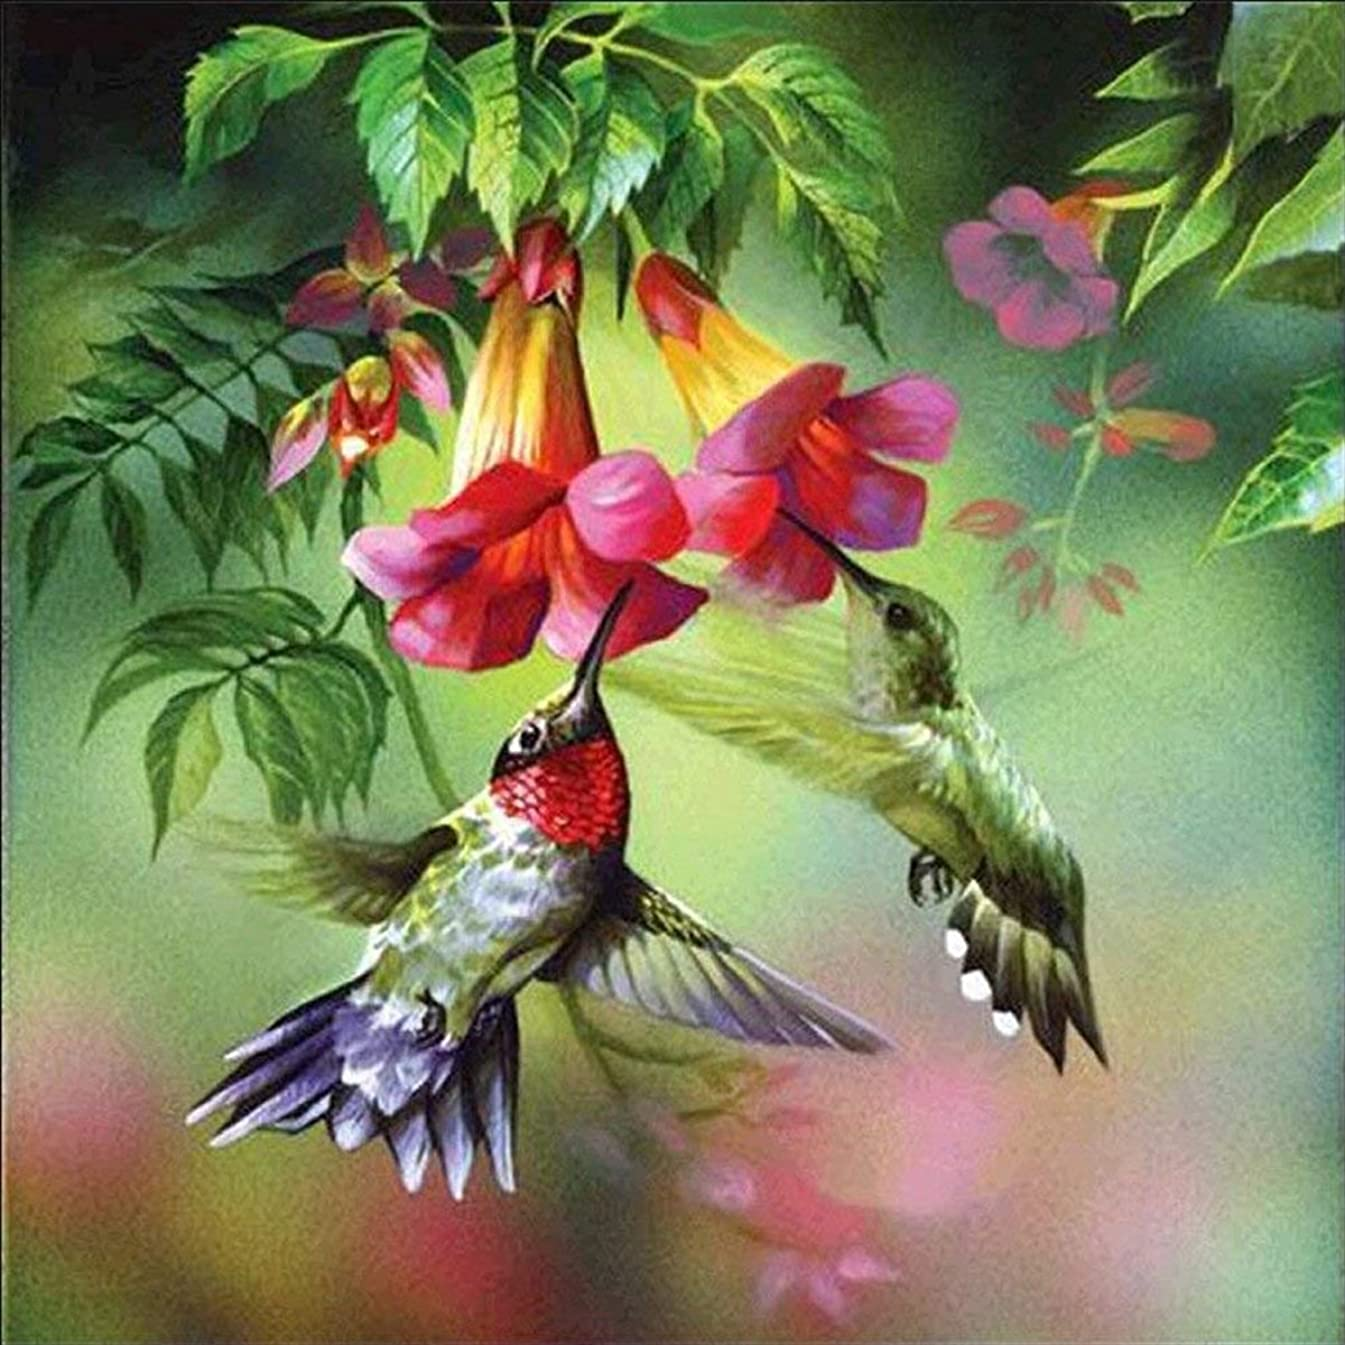 DIY 5D Diamond Painting by Number Kits, Bird Opera Flower Full Diamond Embroidery Painting Cross Stitch Arts Craft Canvas Wall Decor 11.8 x 11.8 inch josppycle4338495